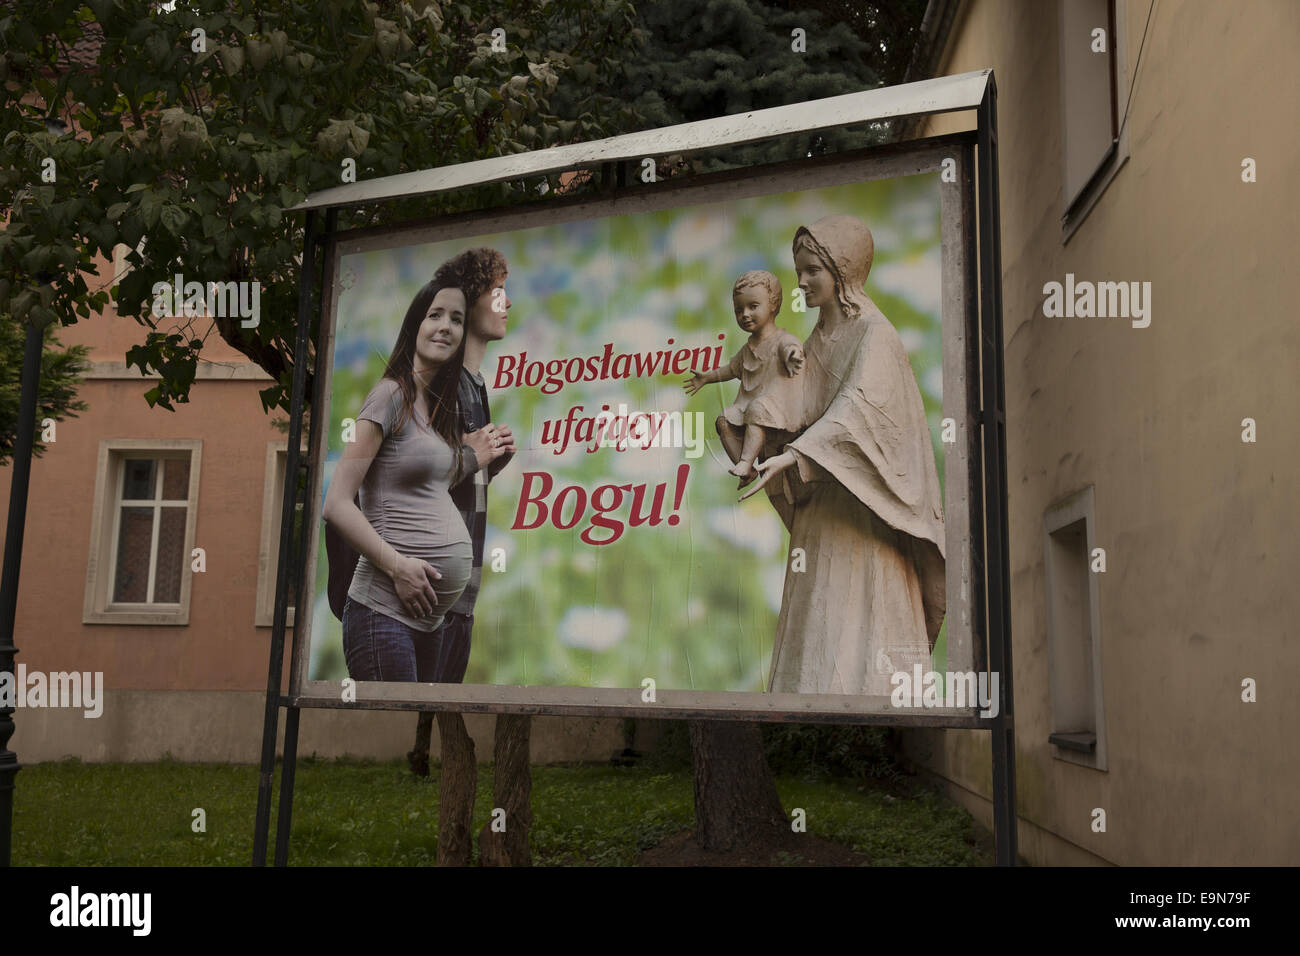 Pro-life billboard near a Catholic Church. 'Blessed are those who gtrust God' Zielona Gora, Poland - Stock Image